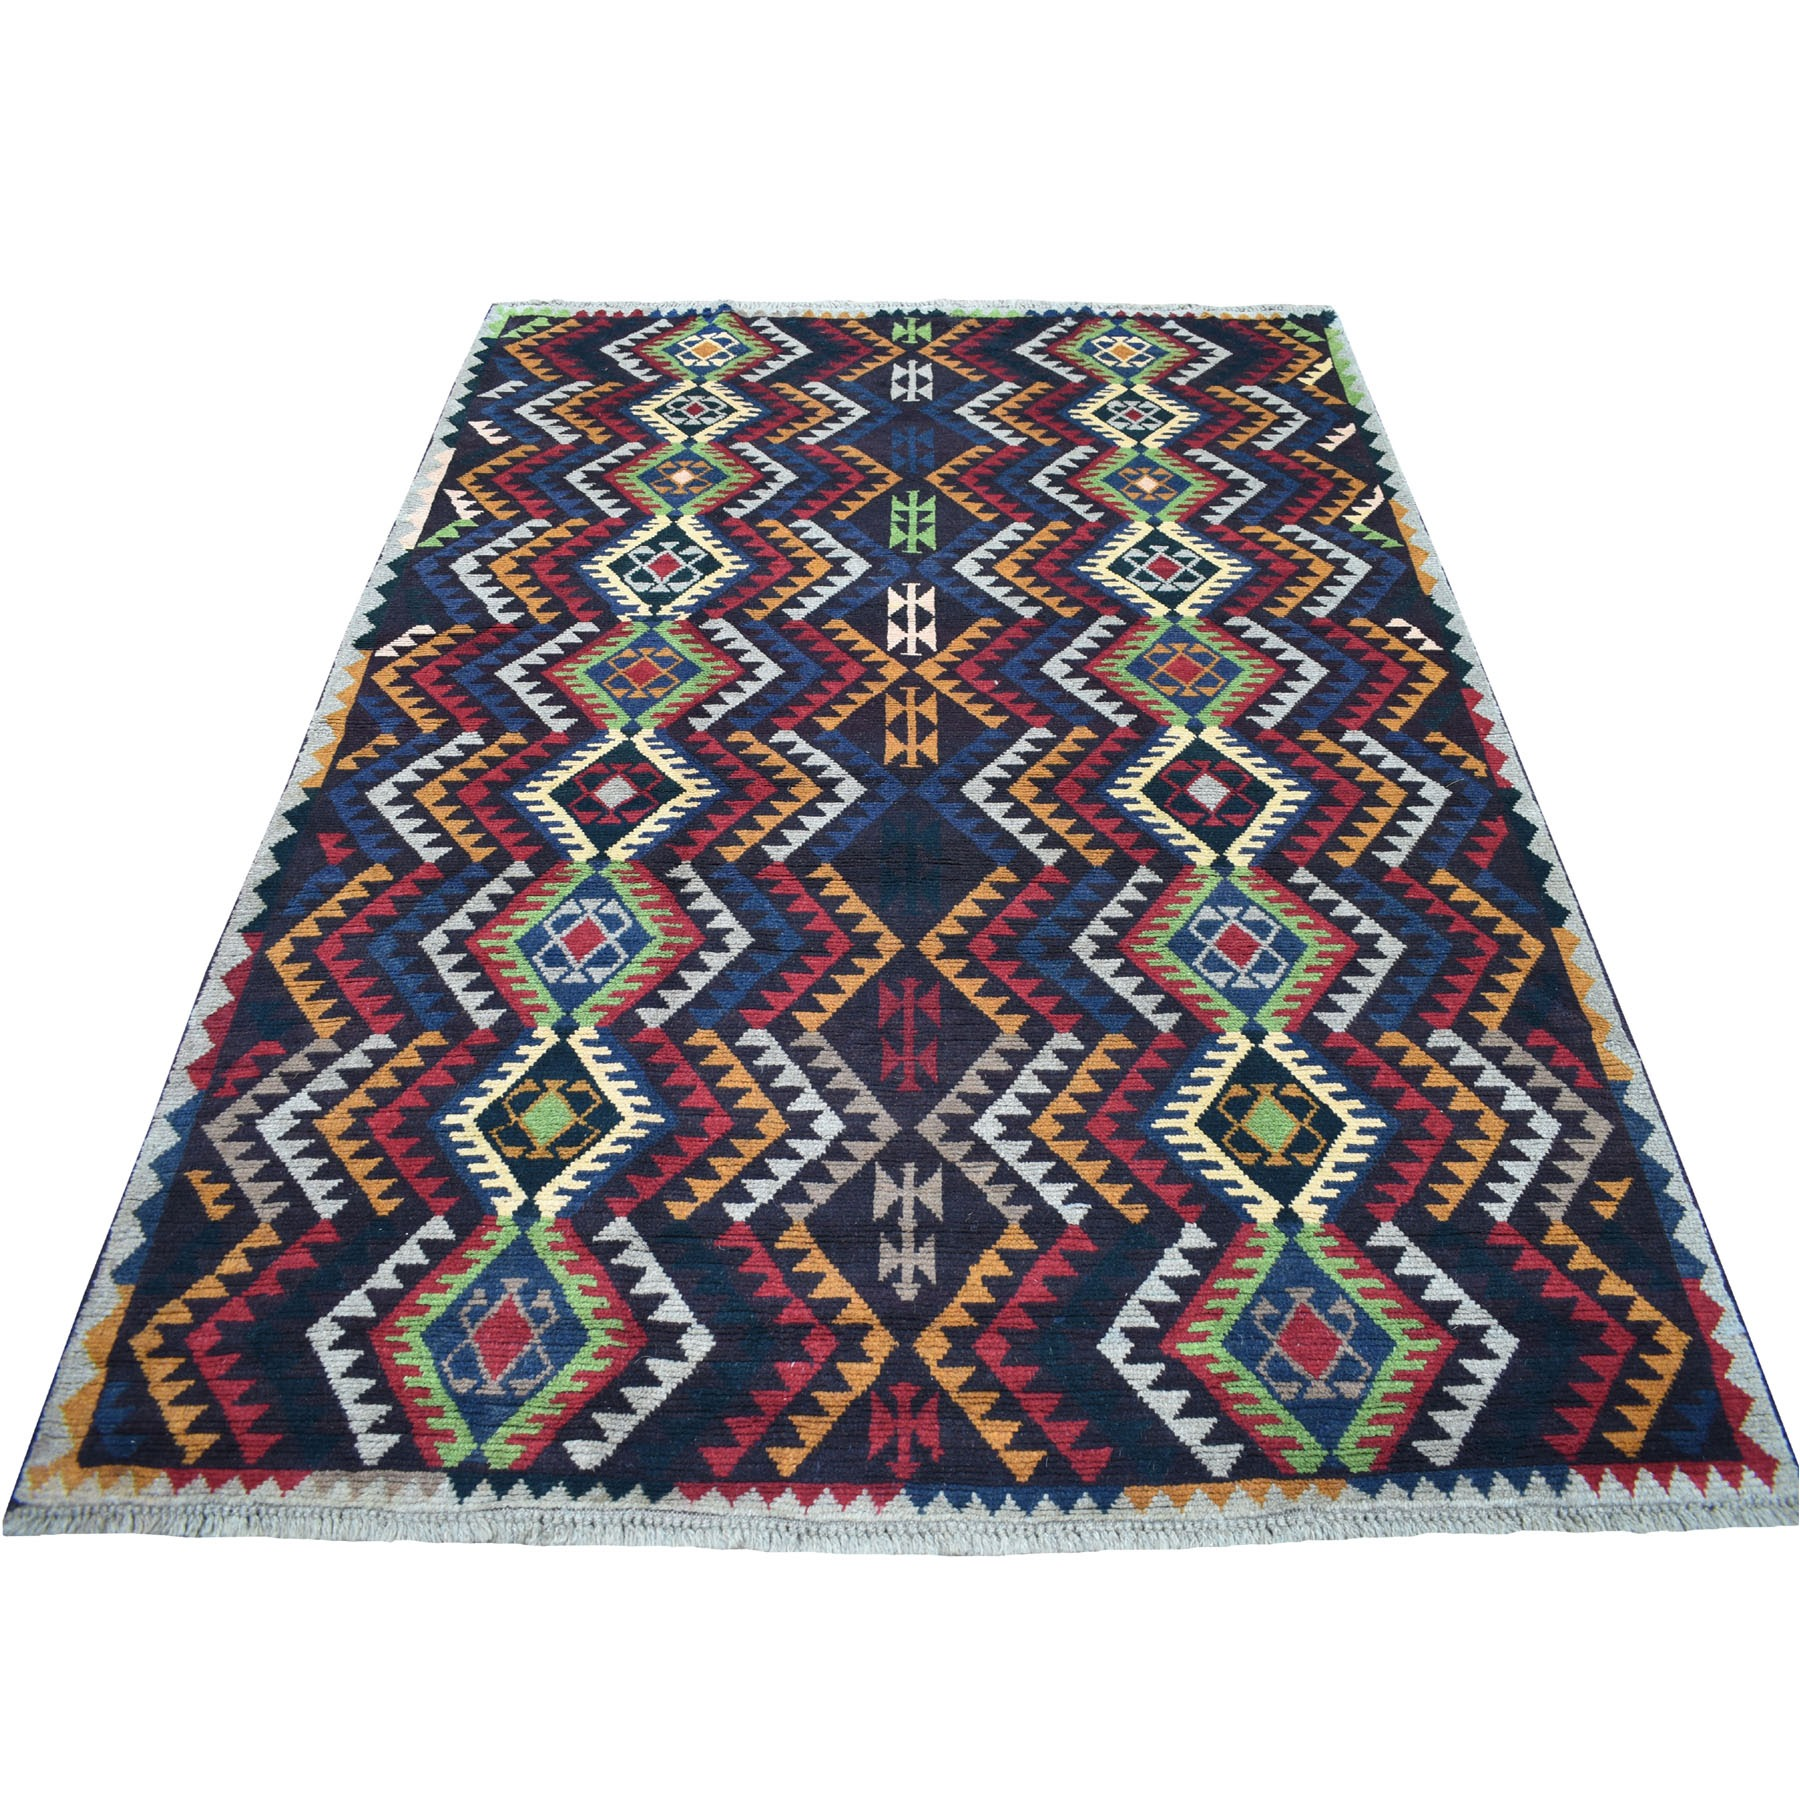 6'x8' Black Colorful Afghan Baluch Geometric Design Hand Woven Pure Wool Runner Oriental Rug